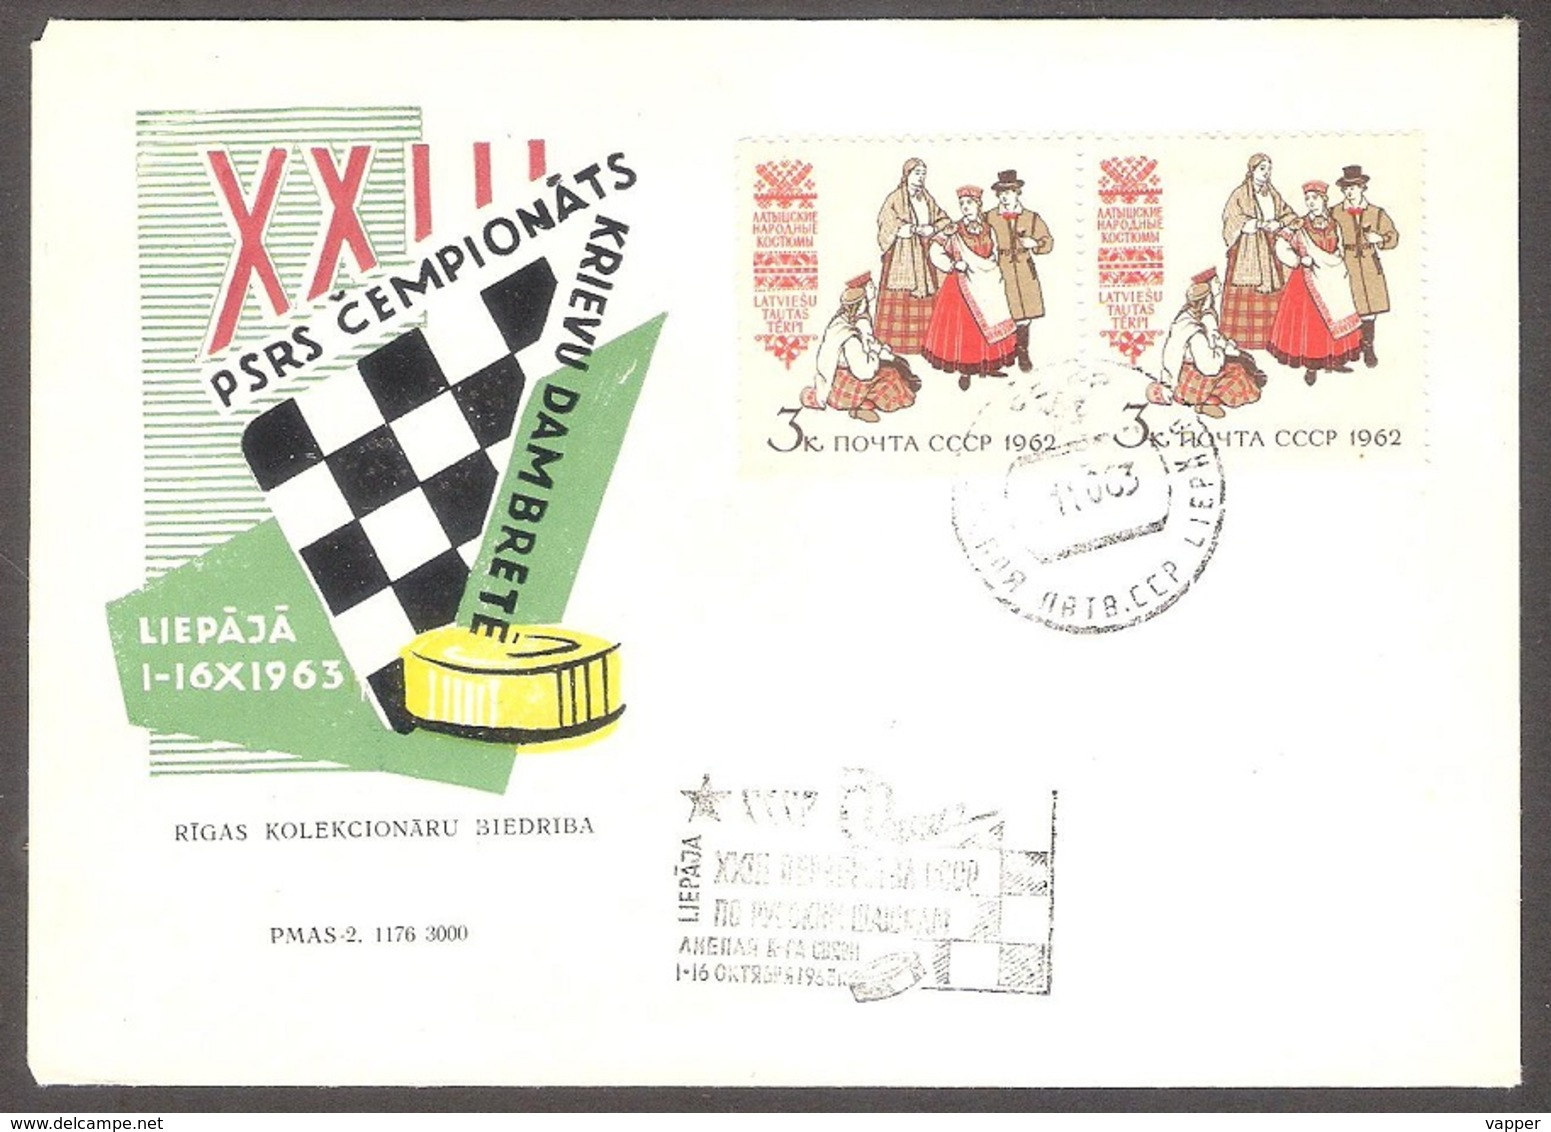 Chess Schach Ajedrez Echecs 1963 Liepaja Postmark Checkers USSR Competition On Souv. Cover Small Tirage - Schaken